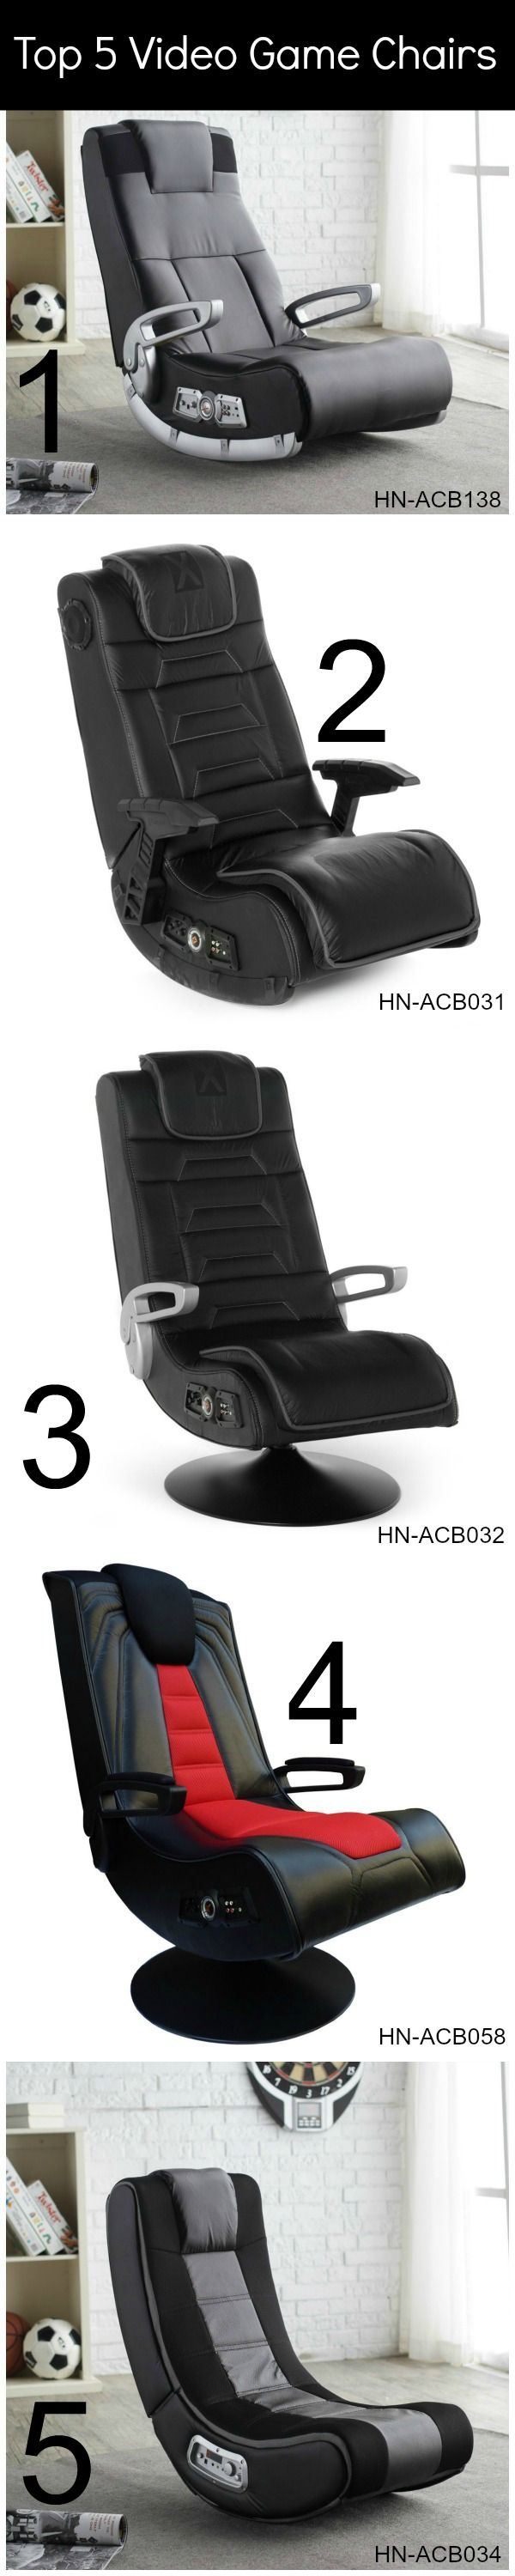 Top 5 video game chairs. Perfect gift!                                                                                                                                                      More #gamerroom